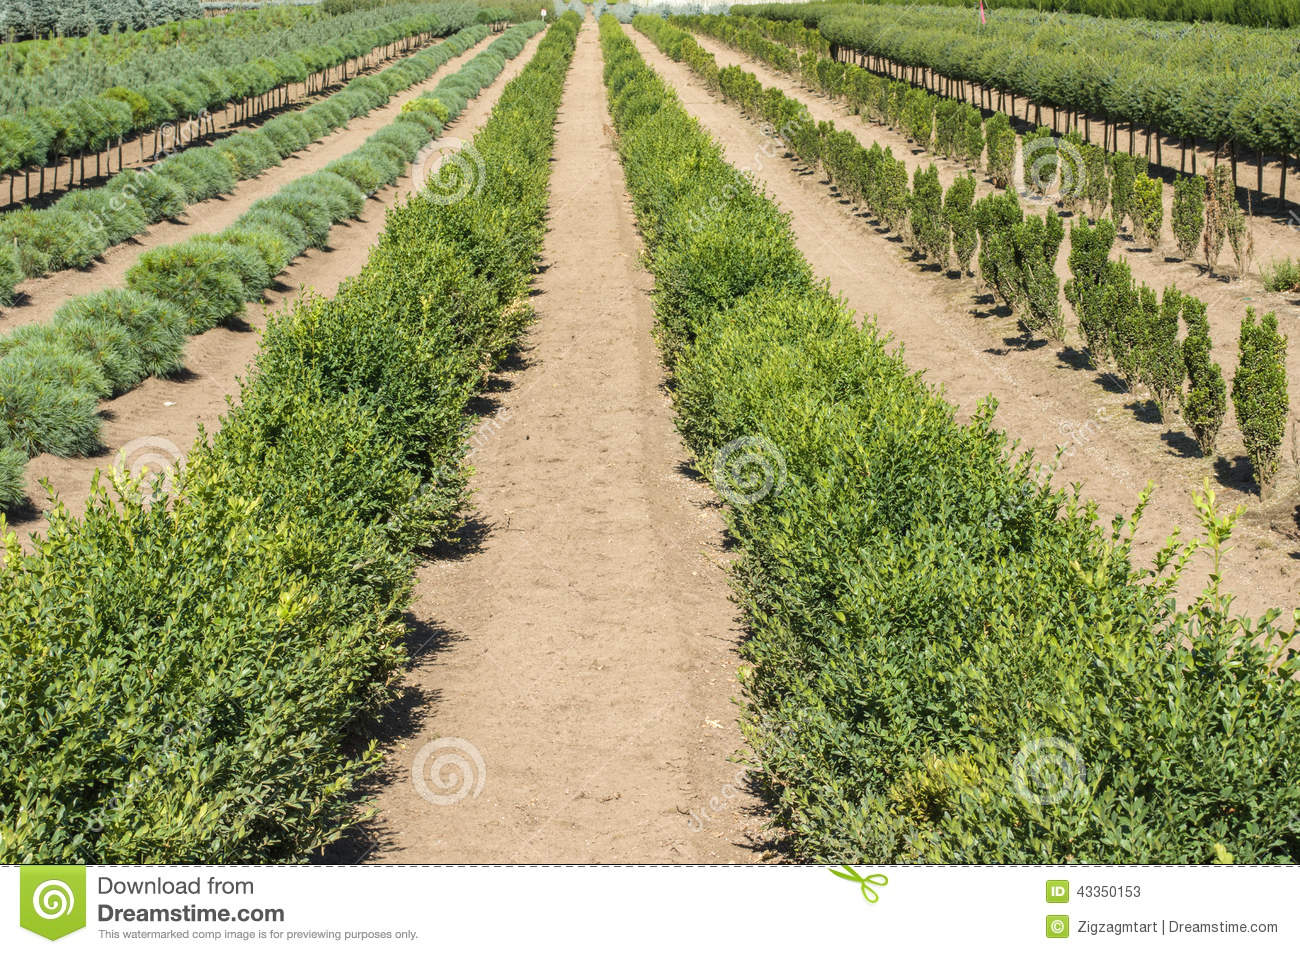 Ornamental plants in rows in a plant nursery stock image for Plant nursery